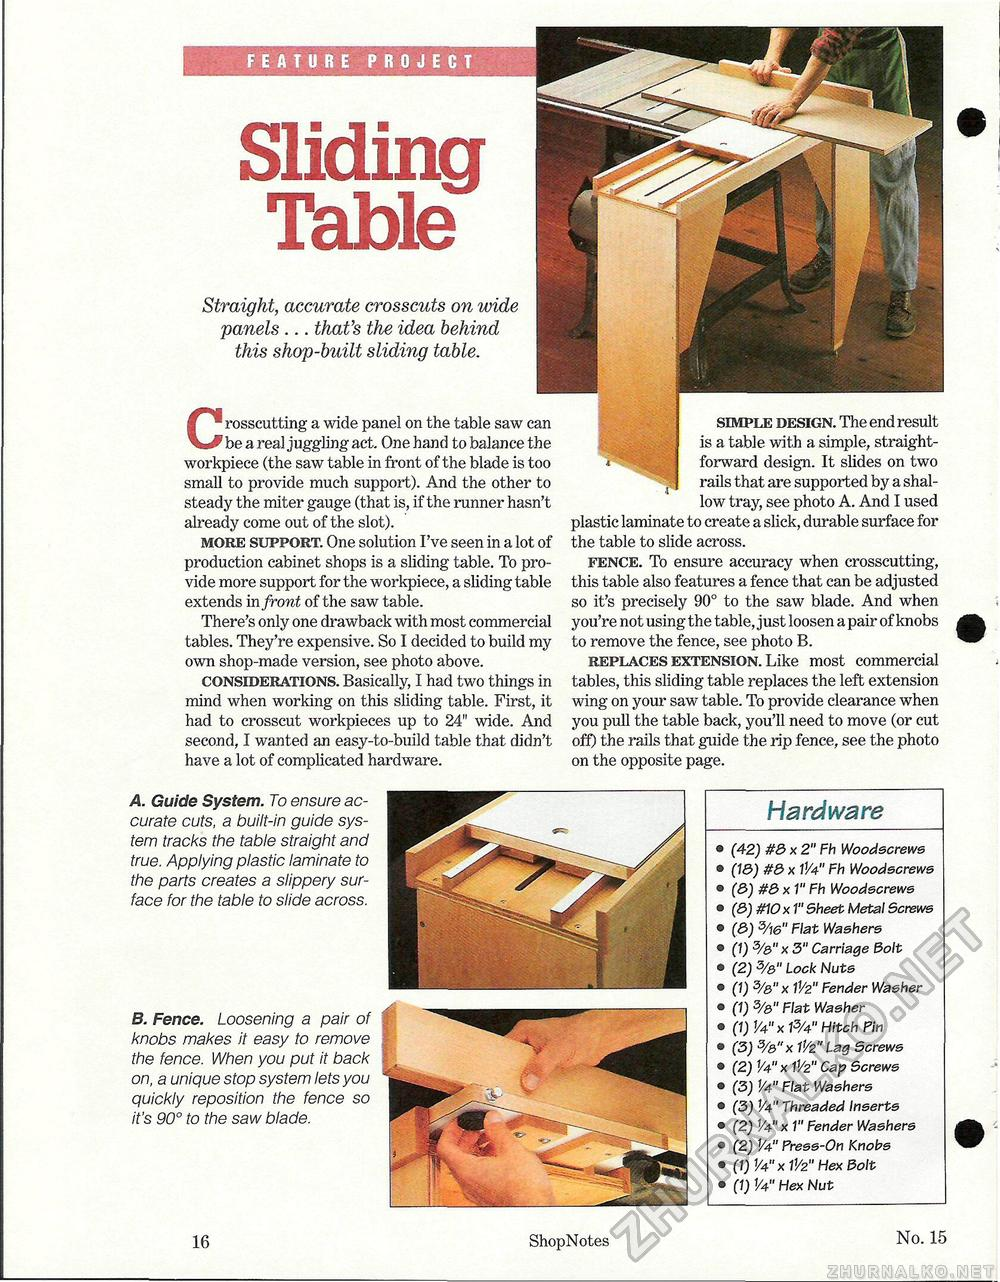 15 - Sliding Table, страница 16